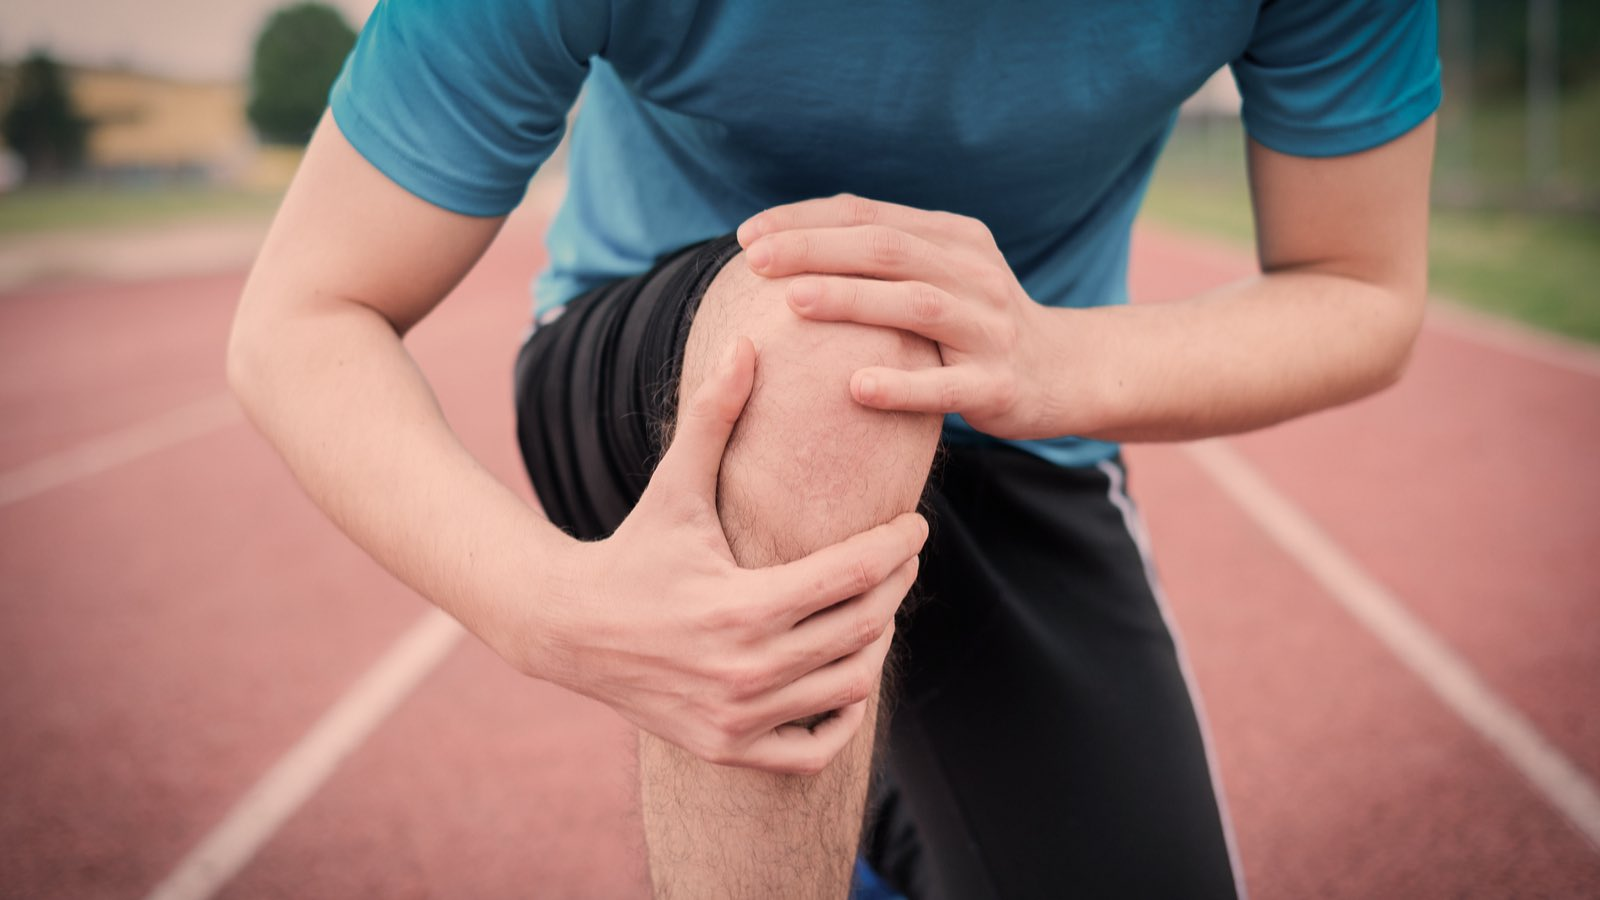 Subjective Examination of Patellofemoral Pain - Develop your patellofemoral assessment skills